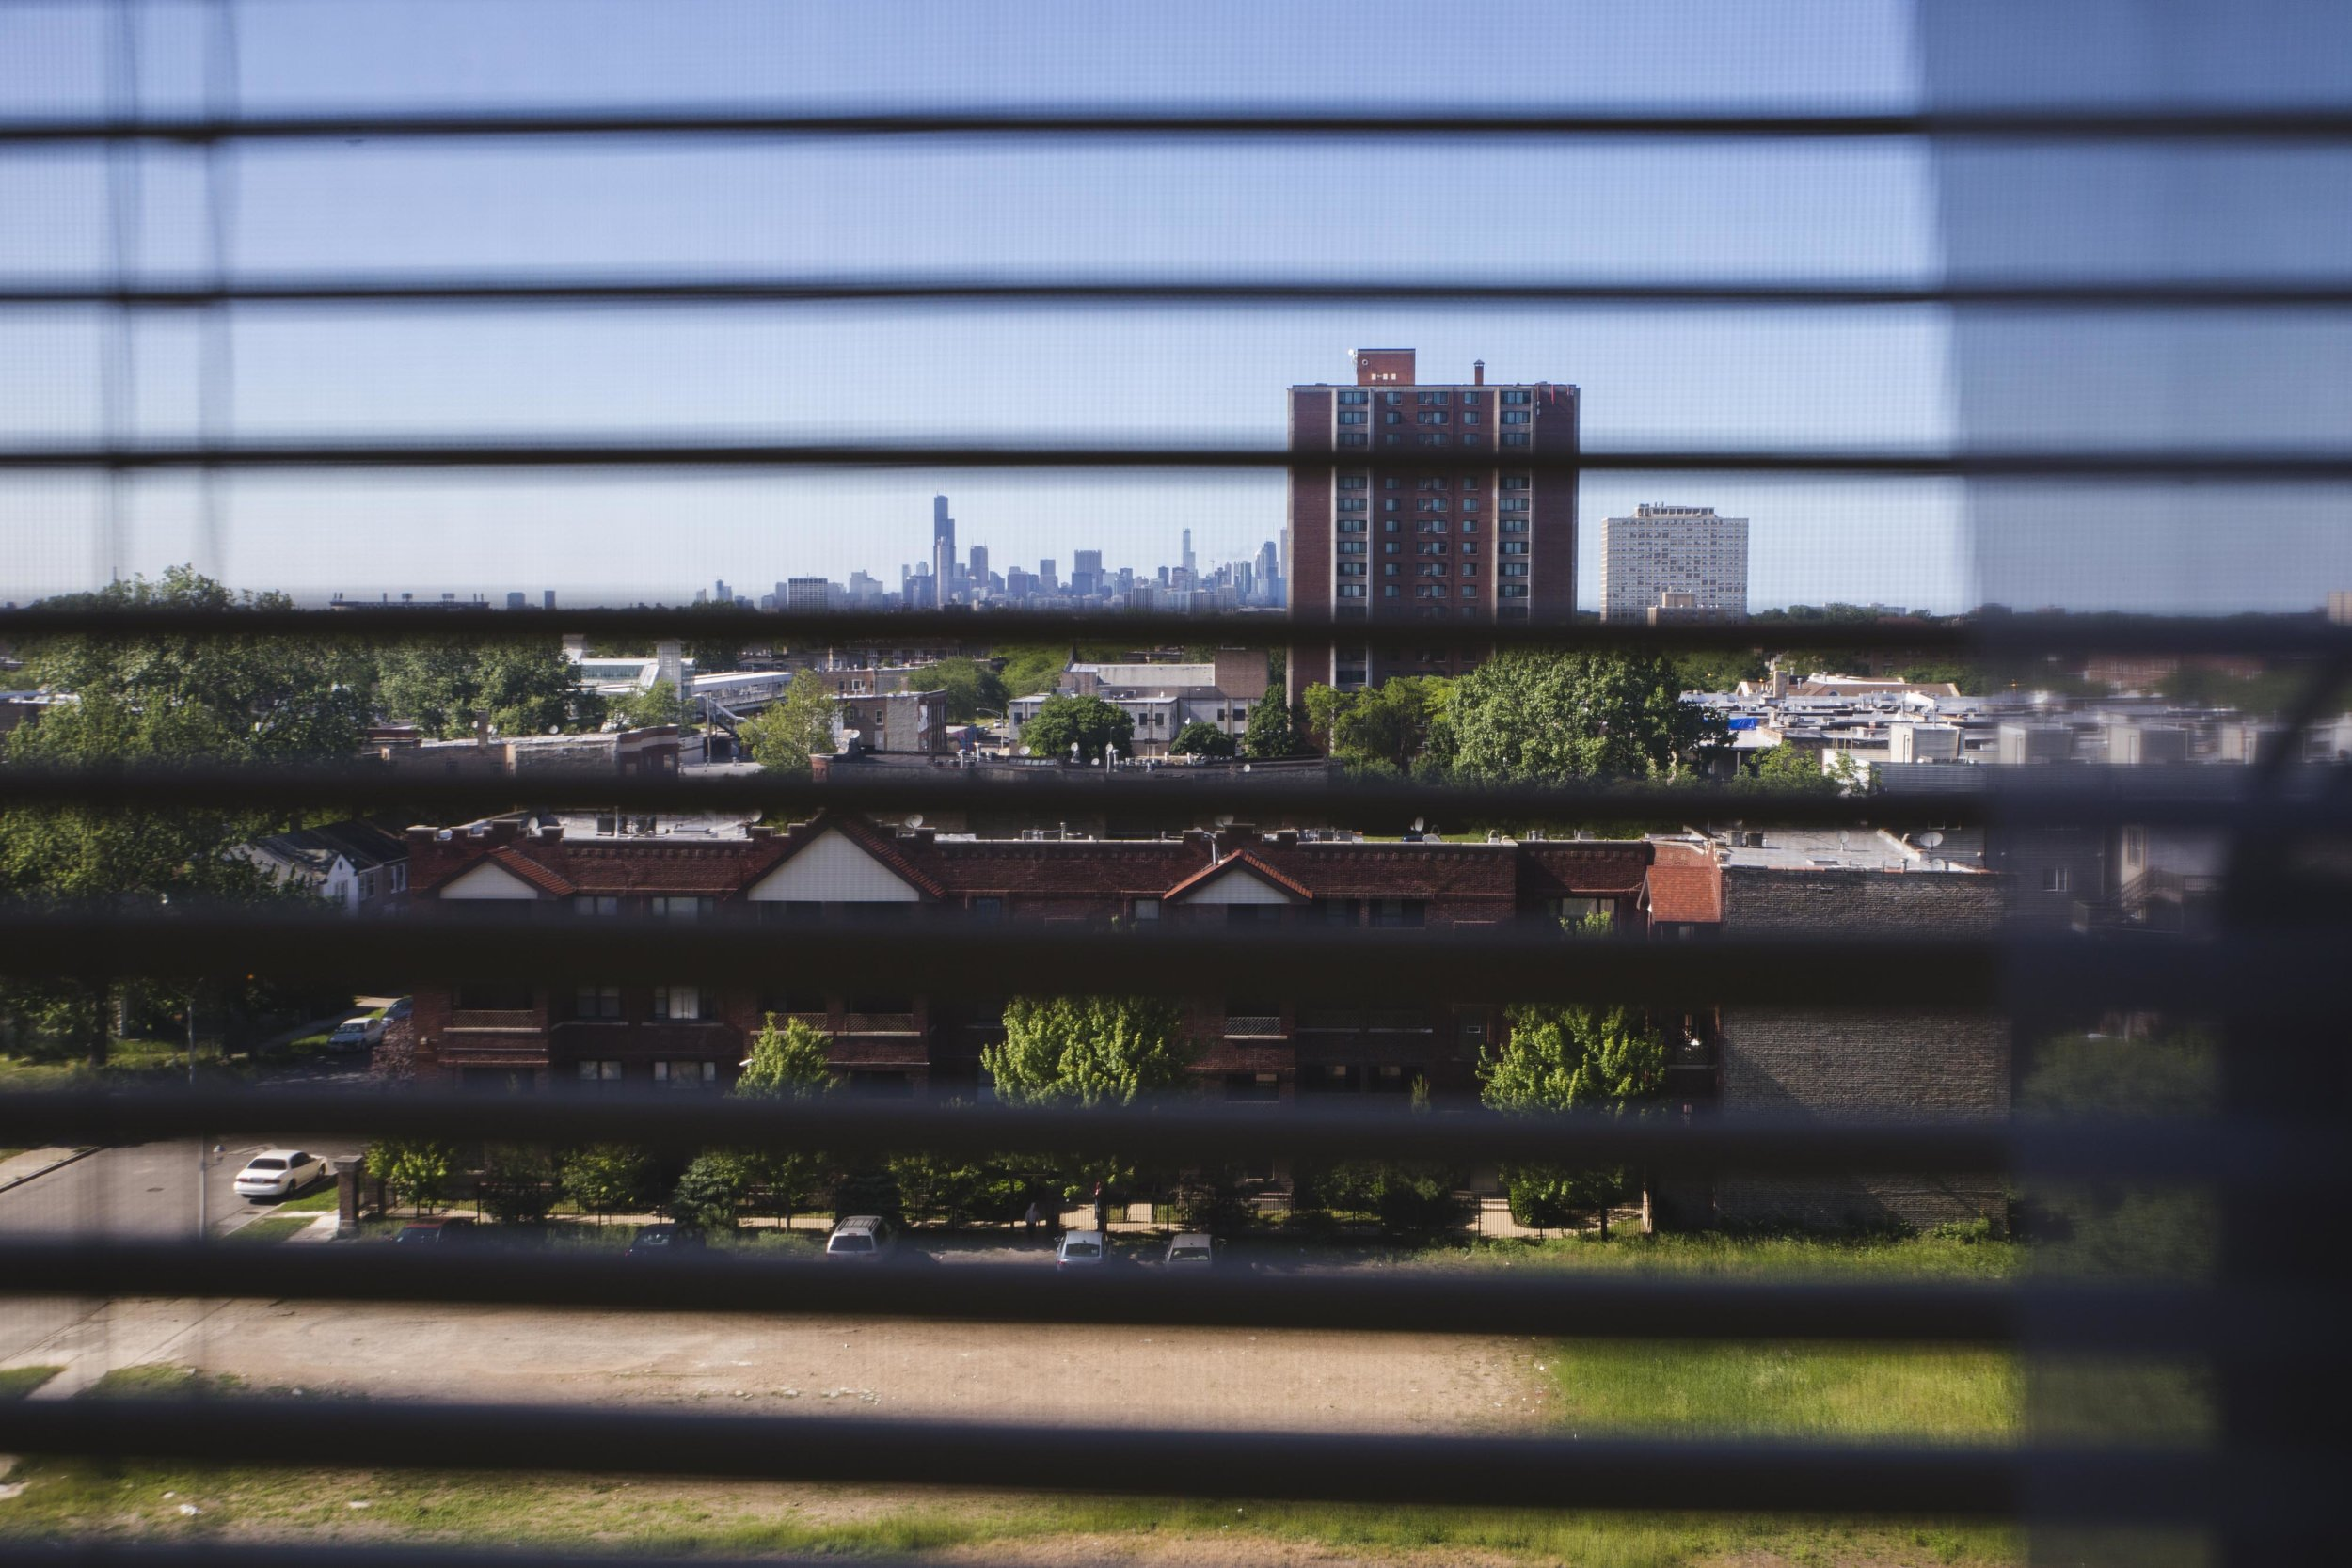 The view from Darnetta Donegan's apartment in a low-income senior building in Washington Park.